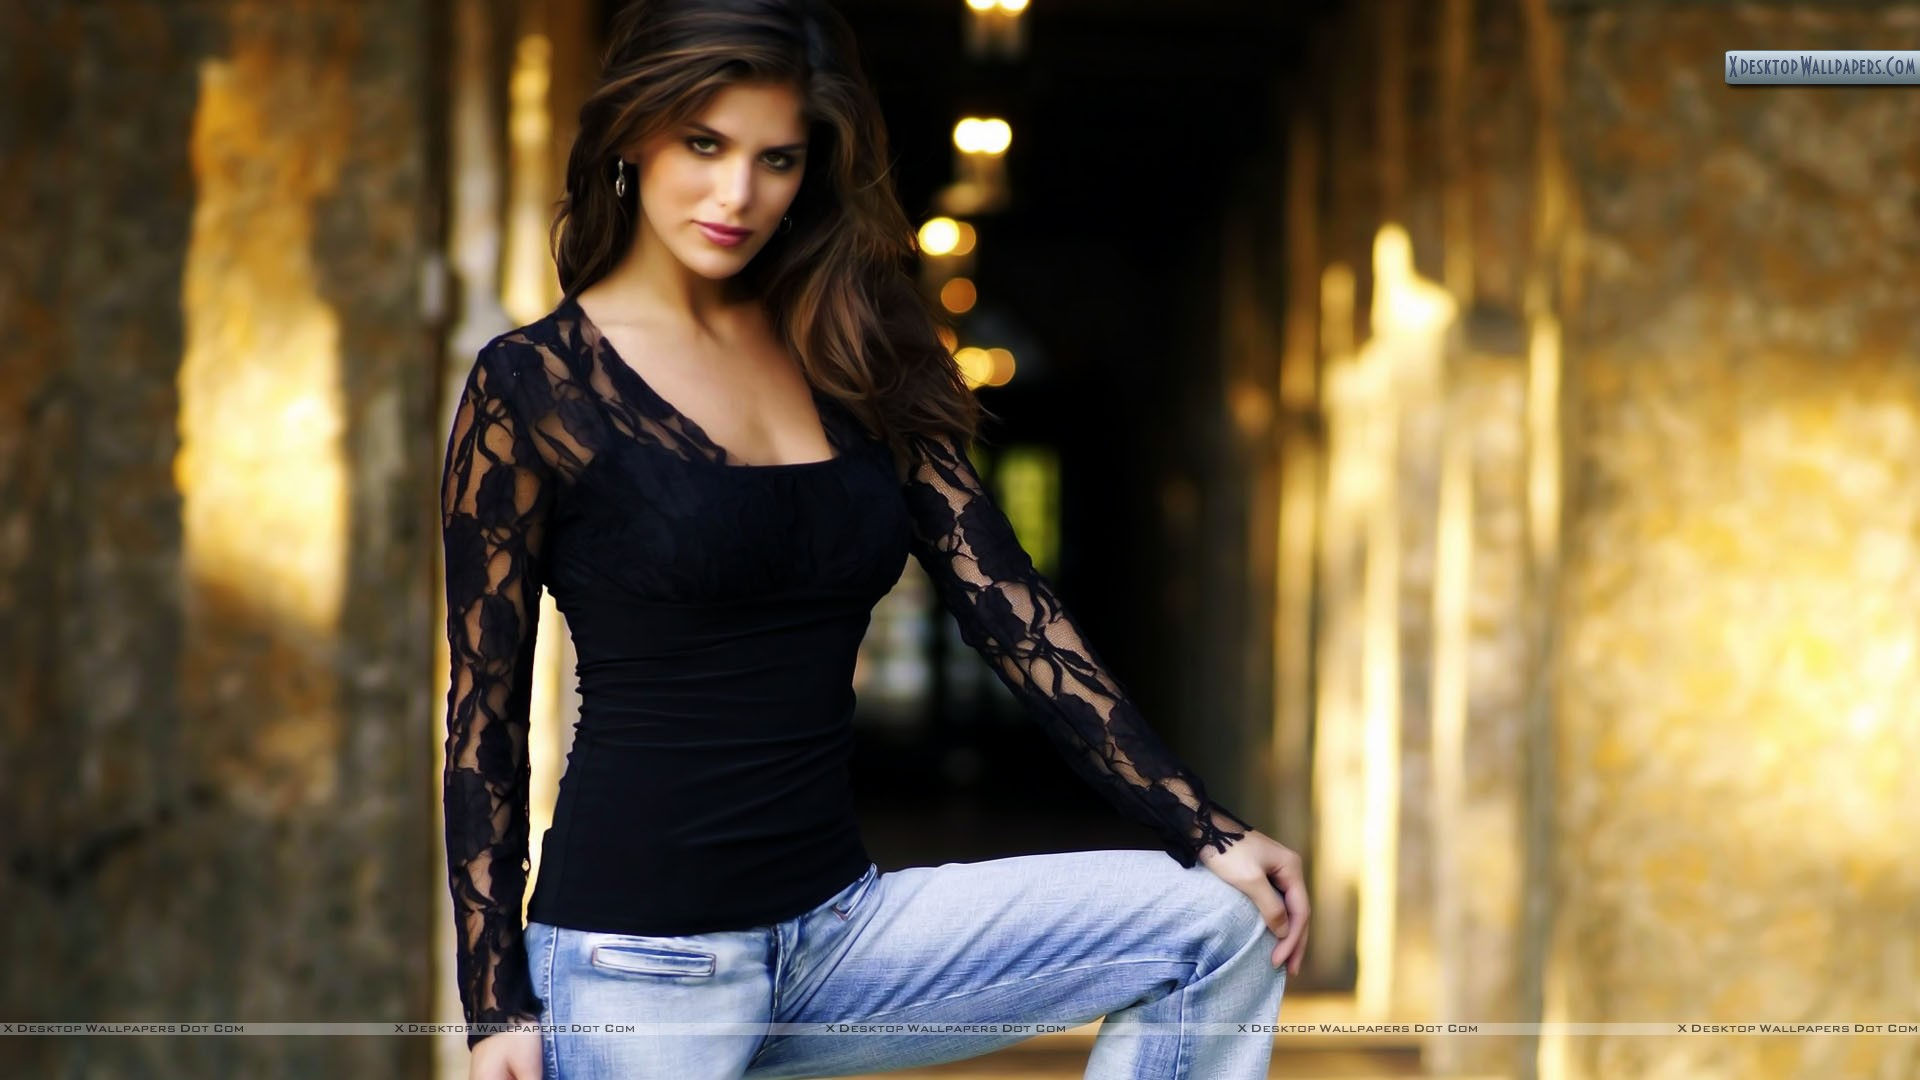 Anahi Hot anahi gonzales in black top and blue jeans photoshoot wallpaper